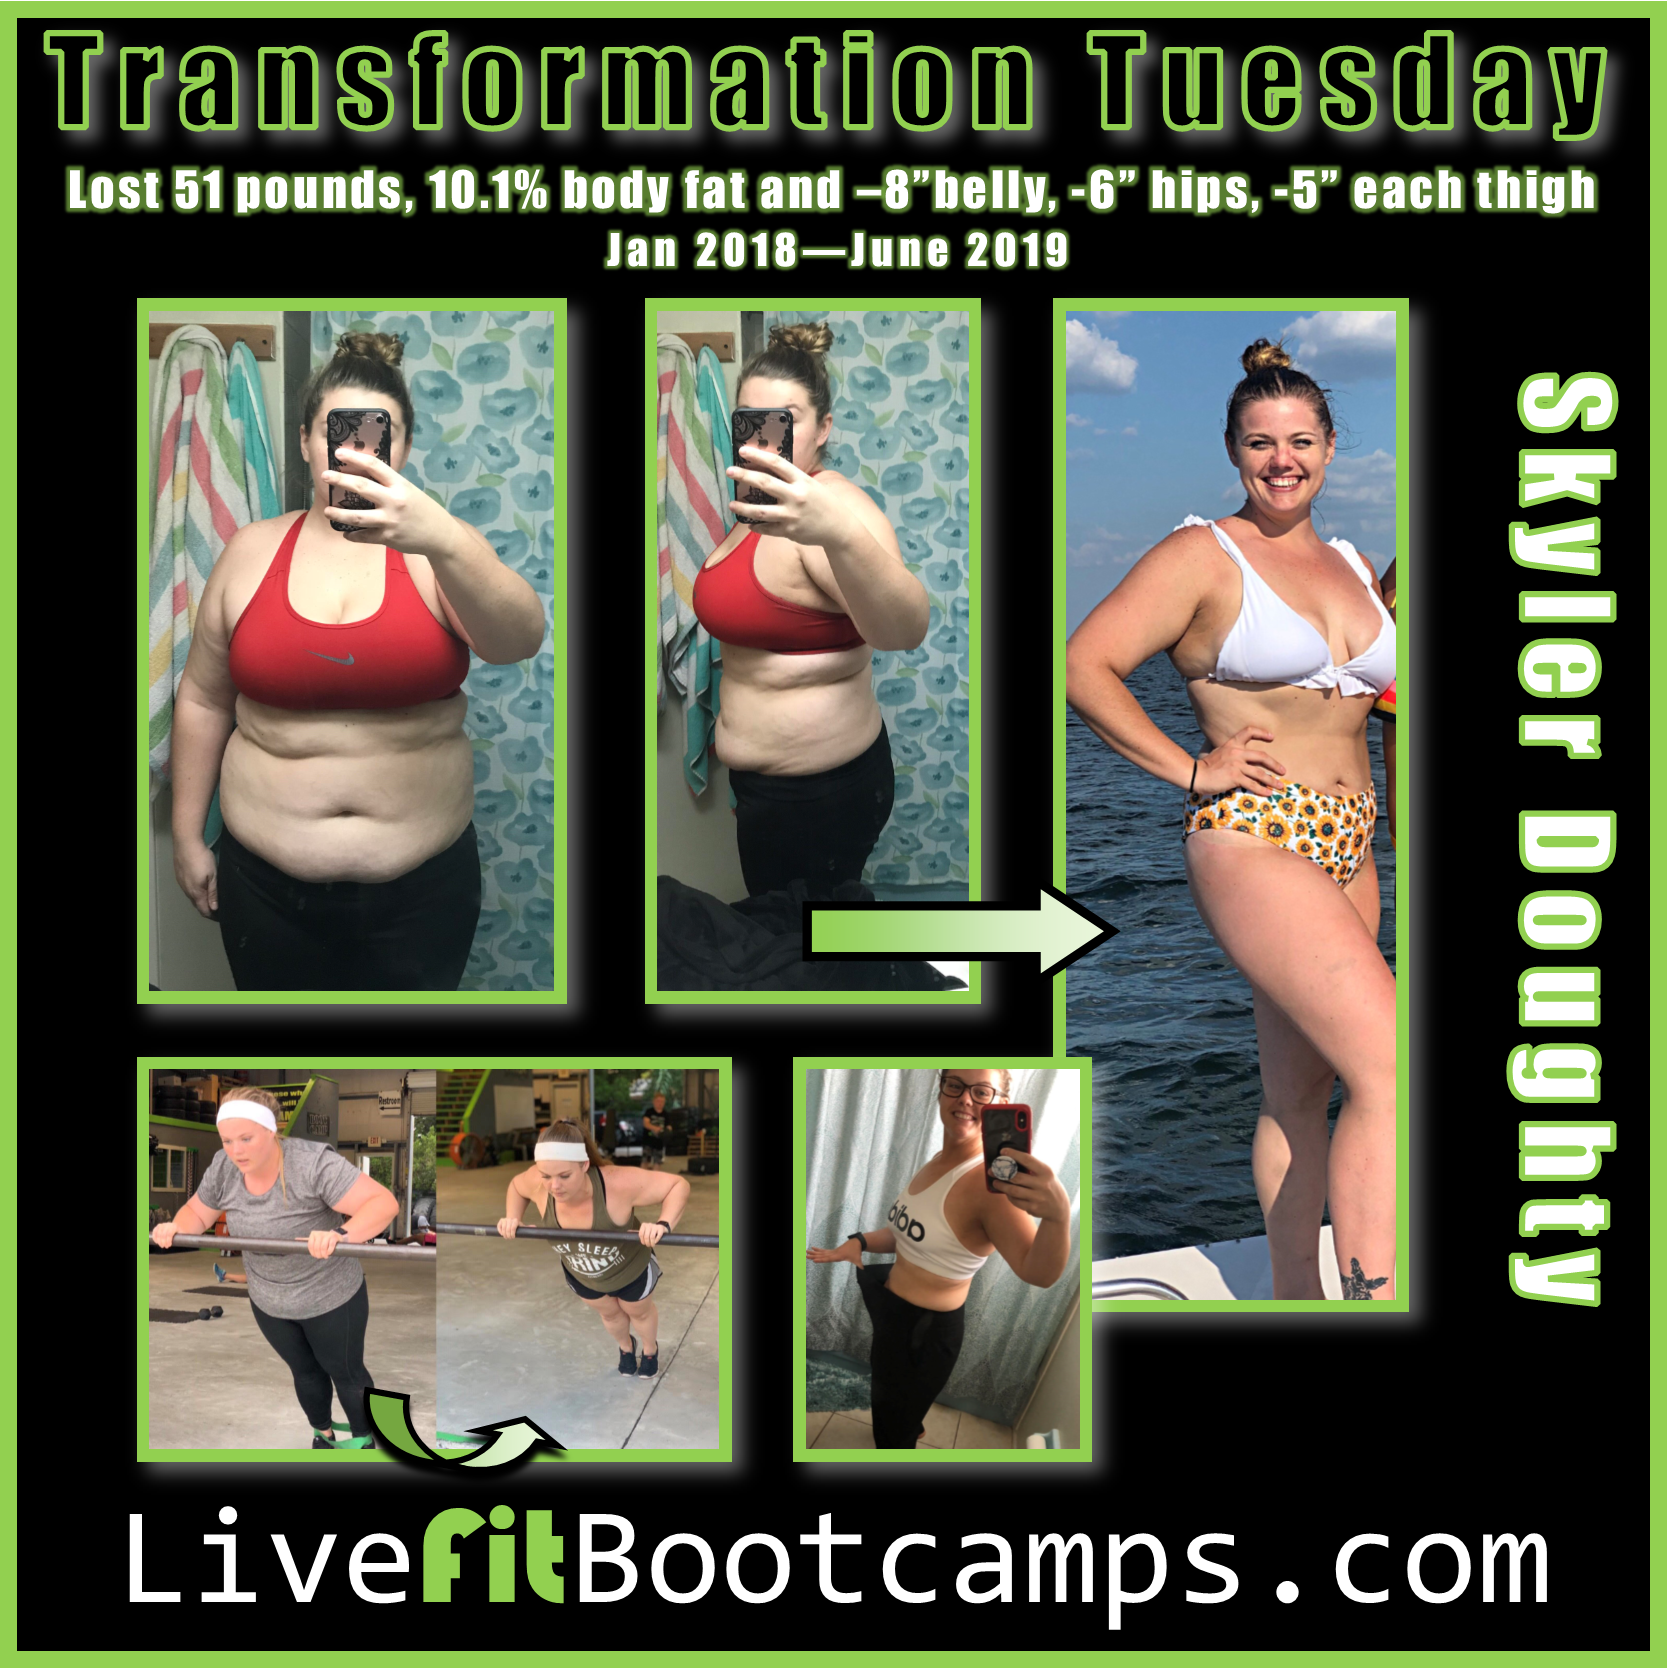 Skyler transformation tuesday fitness bootcamp livefit